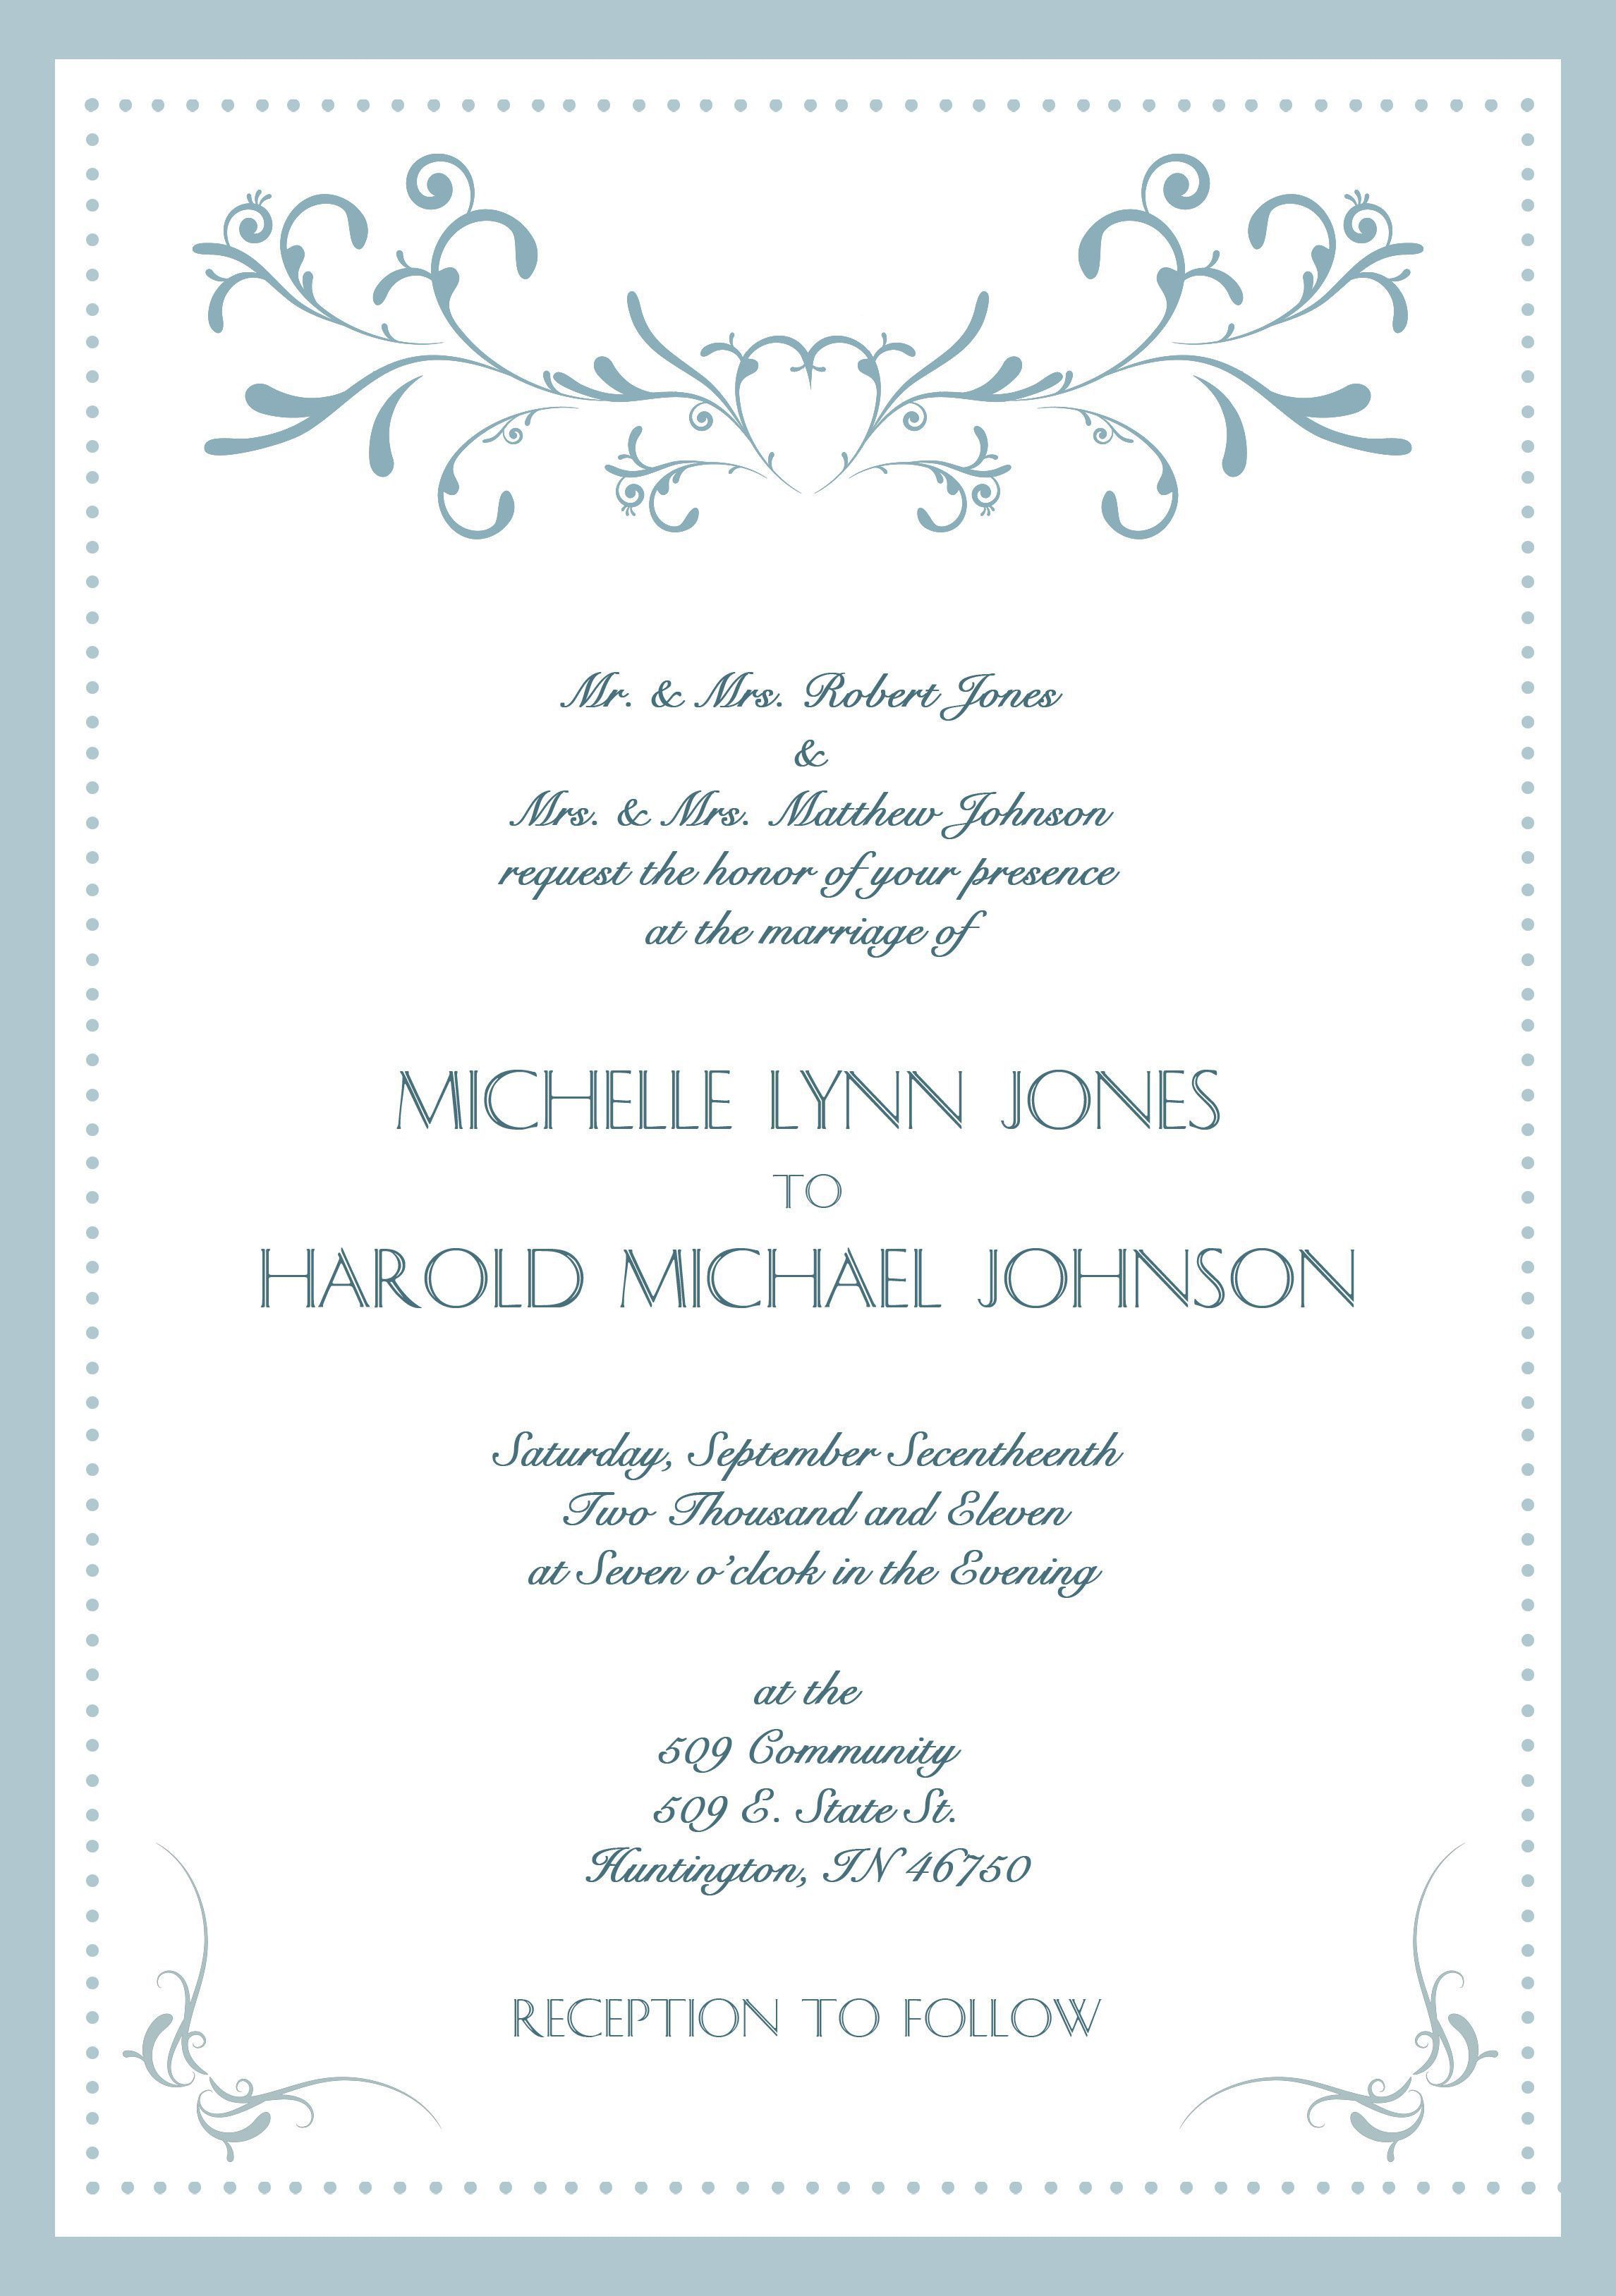 Samples of wedding invitations cards wedding invitations cards samples of wedding invitations cards wedding invitations cards wording invitation cards wedding photo samples of stopboris